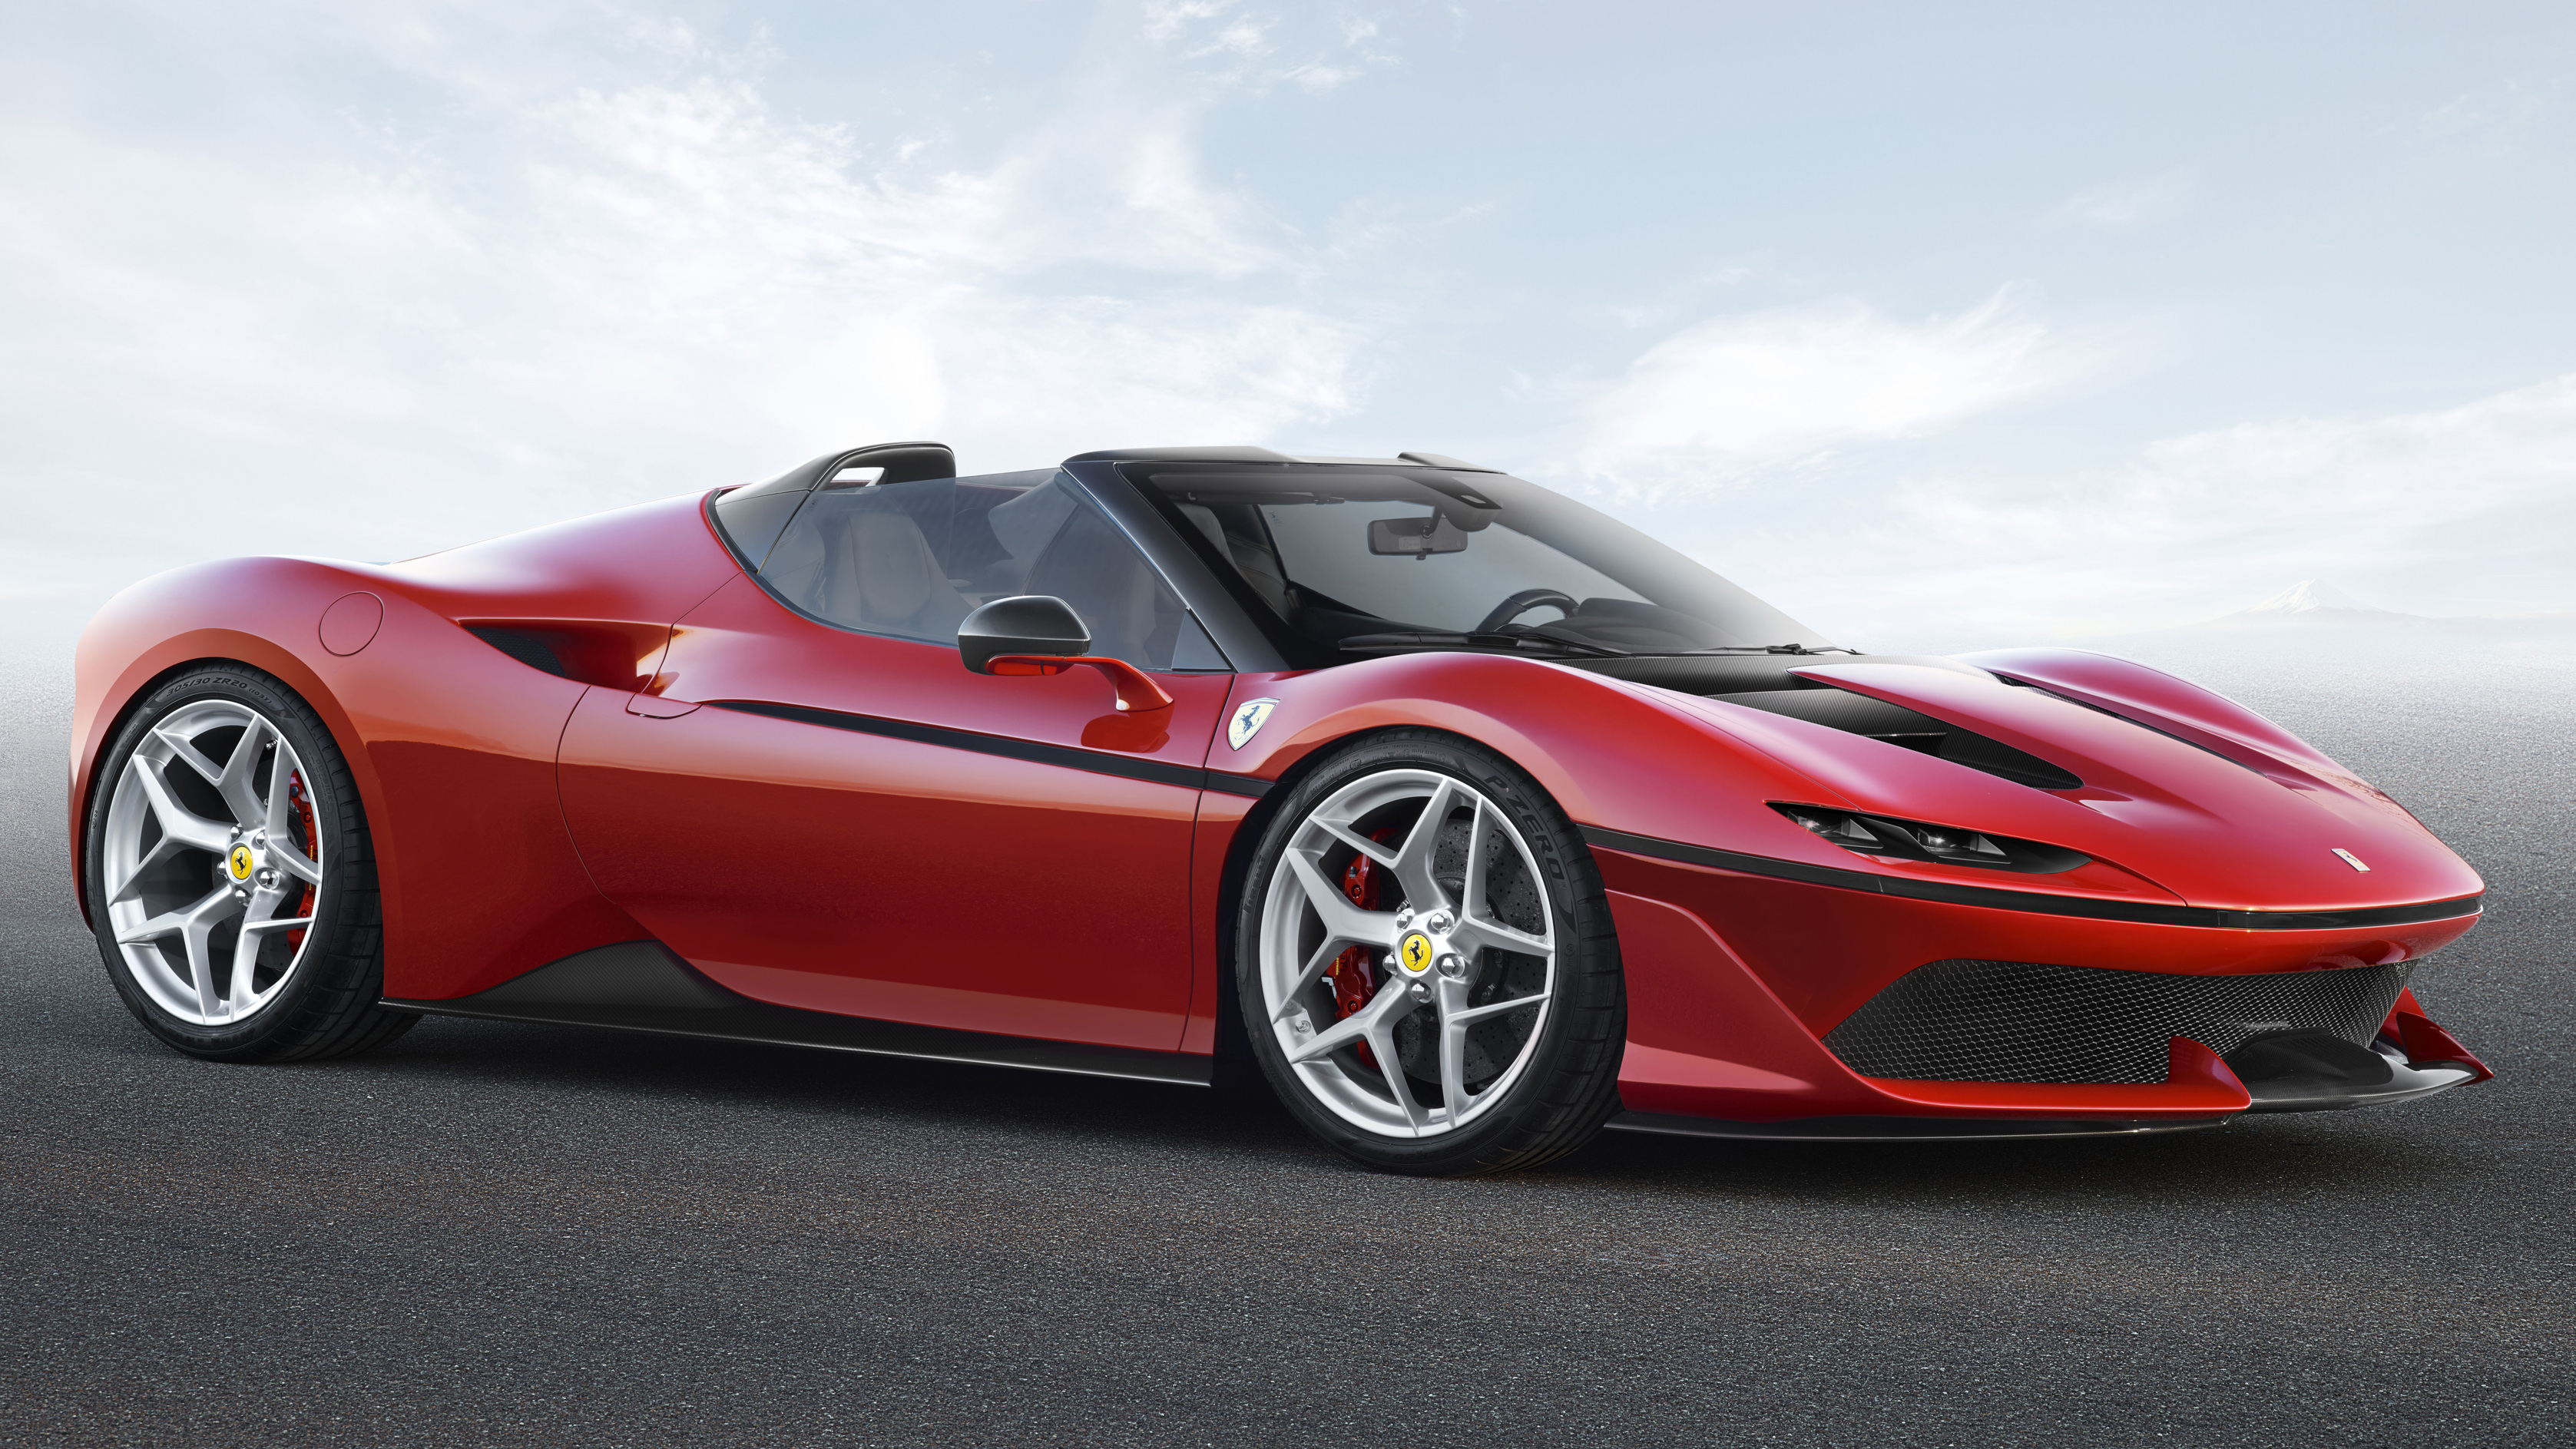 celebrates ferrari cars cheap best used the with public digest story sharing for its by architectural anniversary sale